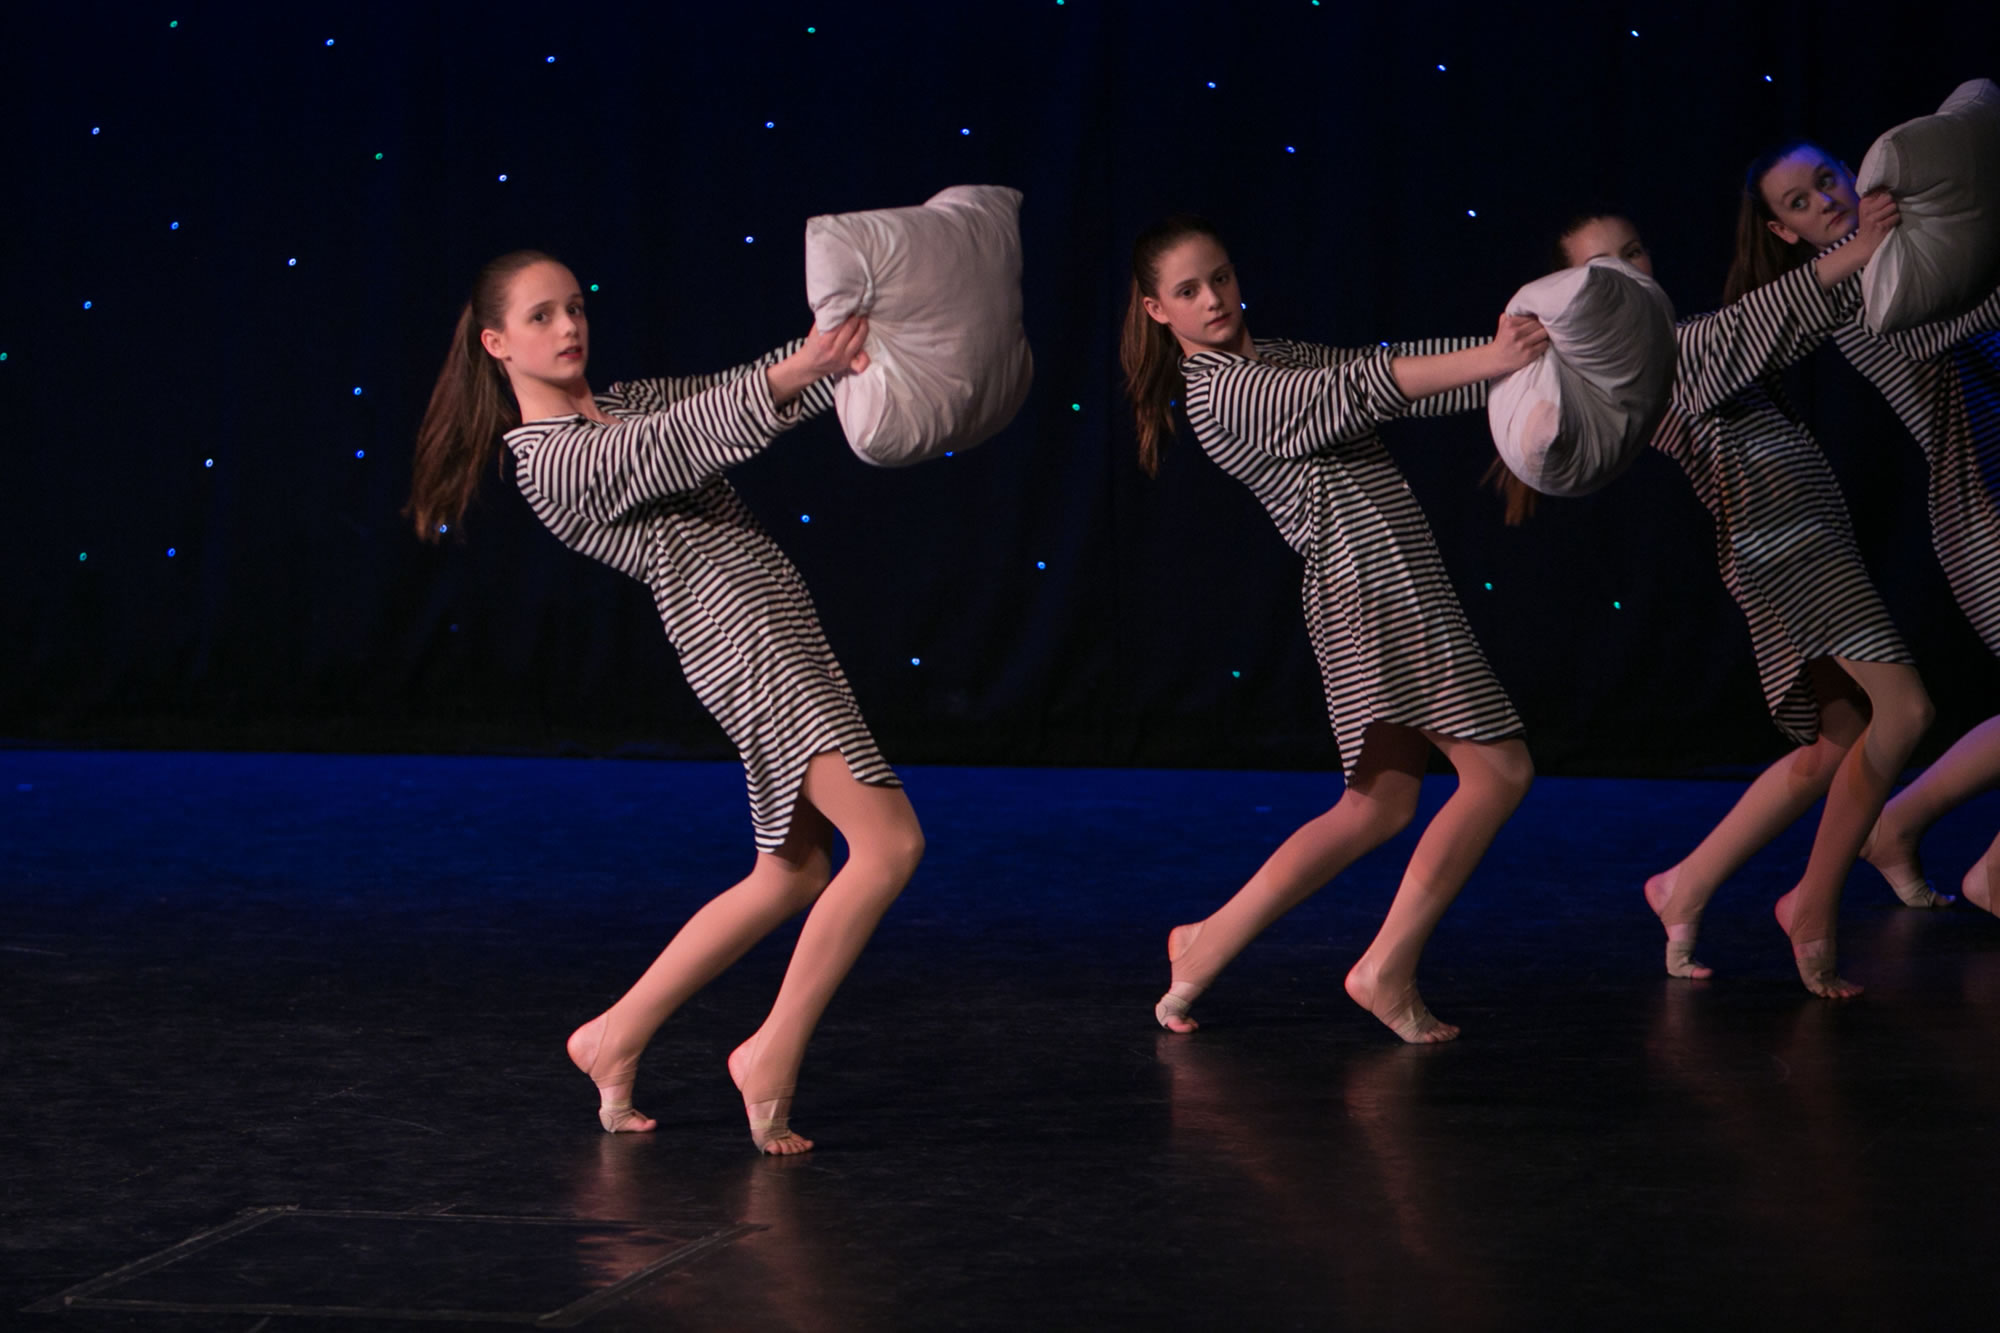 Hitchin_School_of_Dance_Show_2019-SM1_2459.jpg